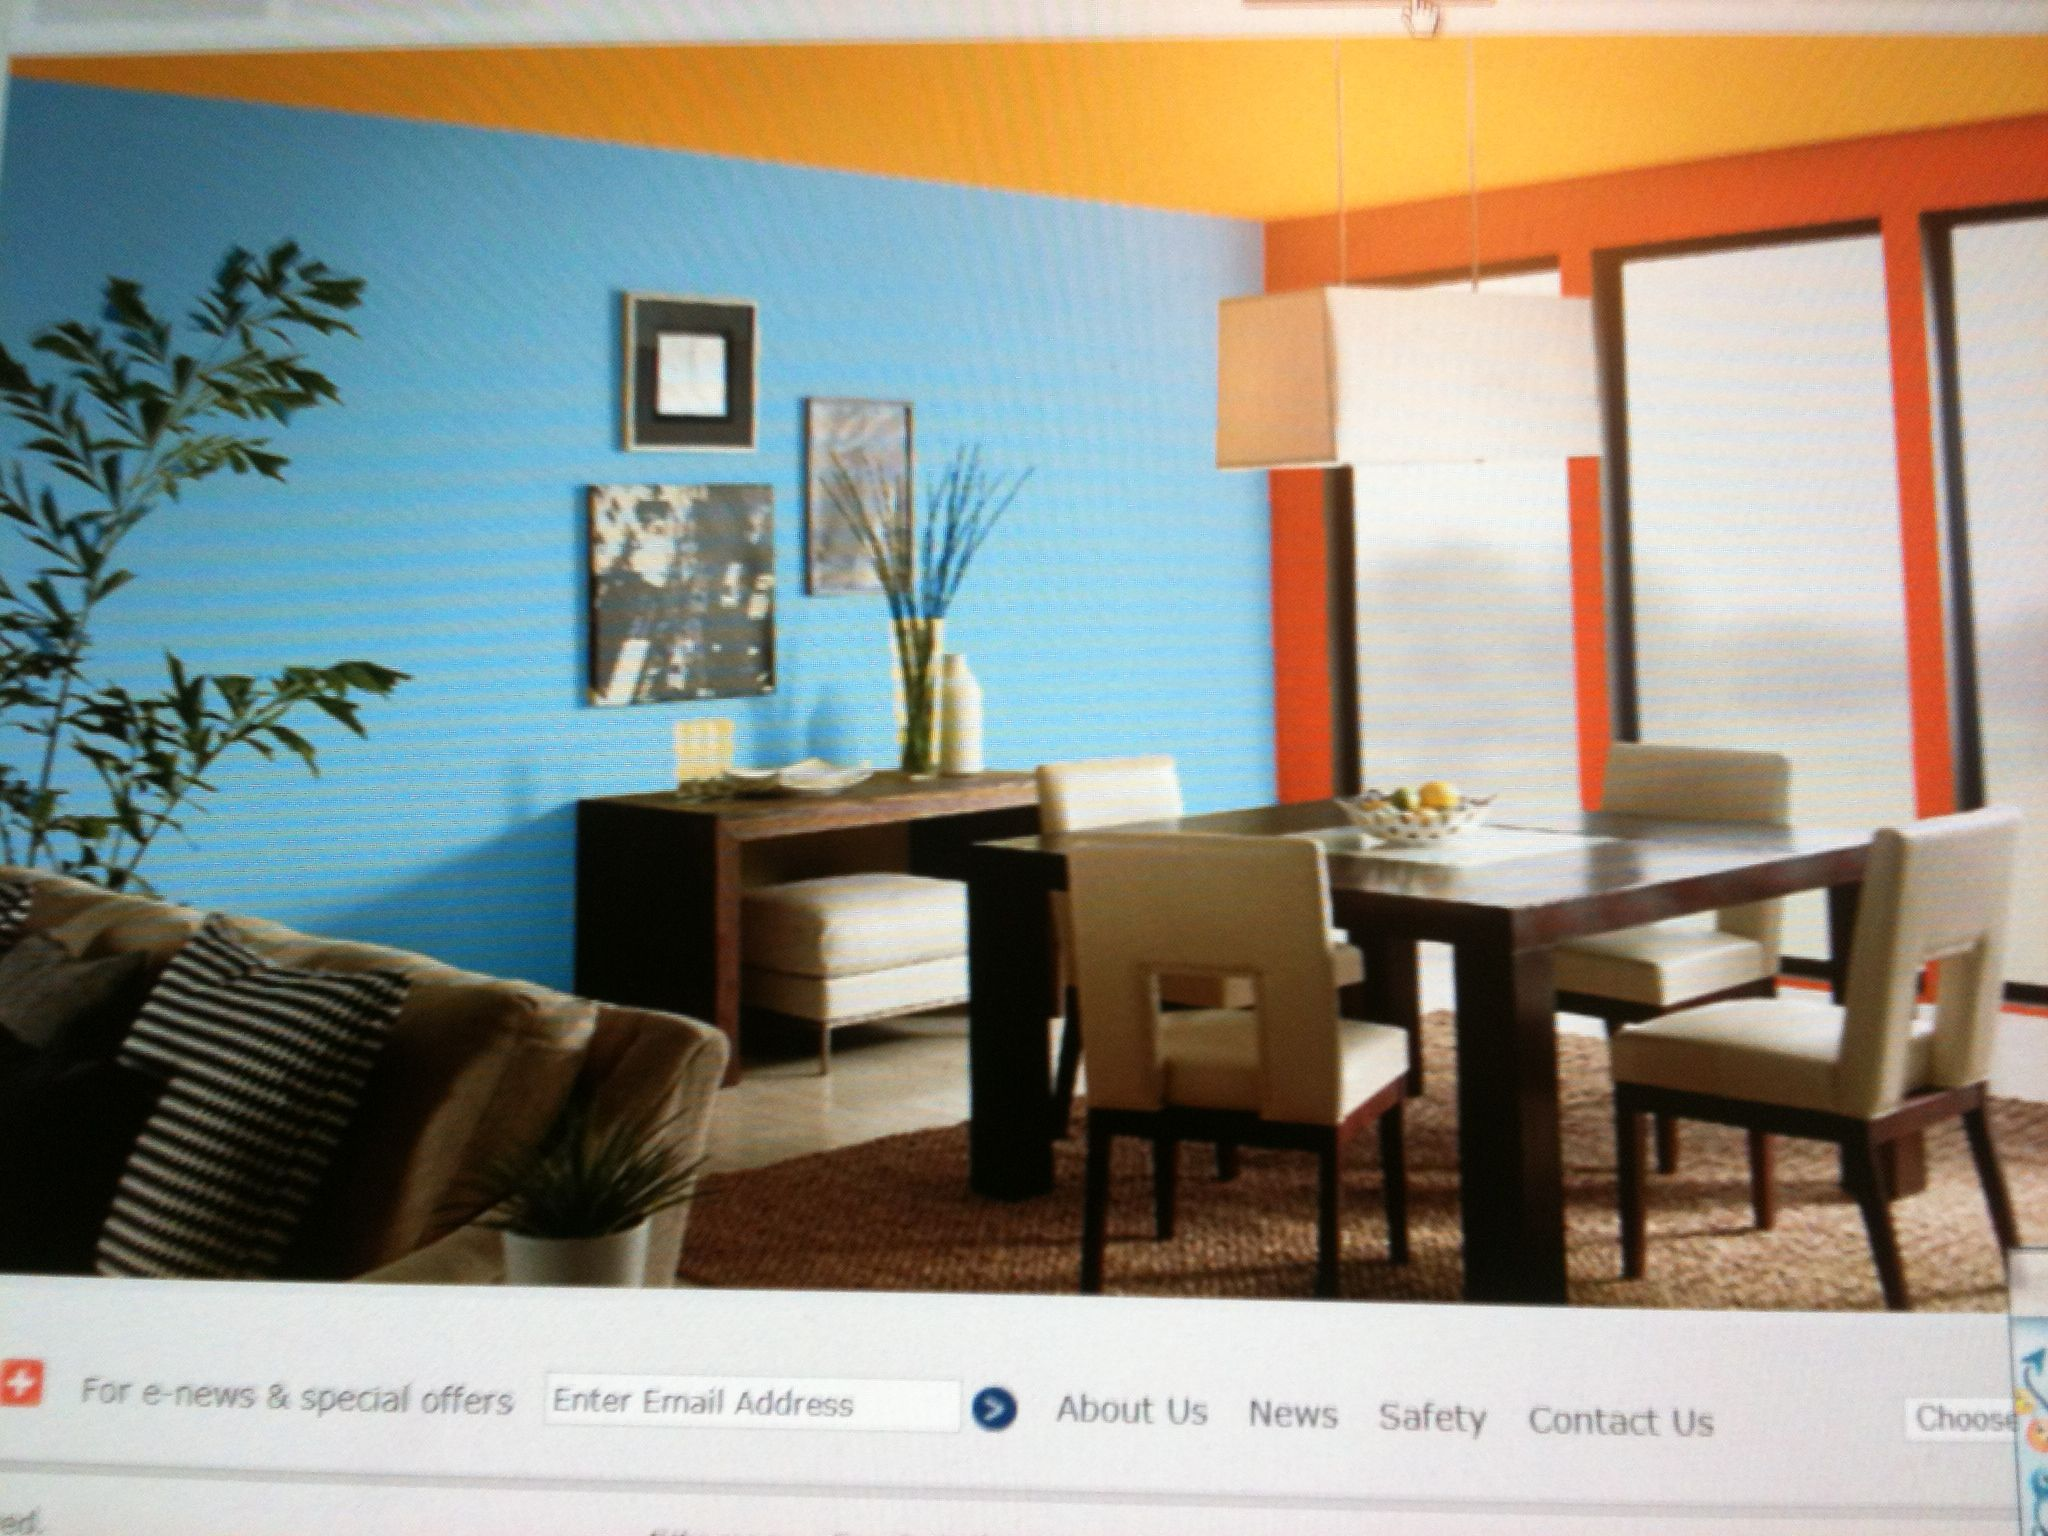 this split complementary room consists of blue, yellow-orange, and